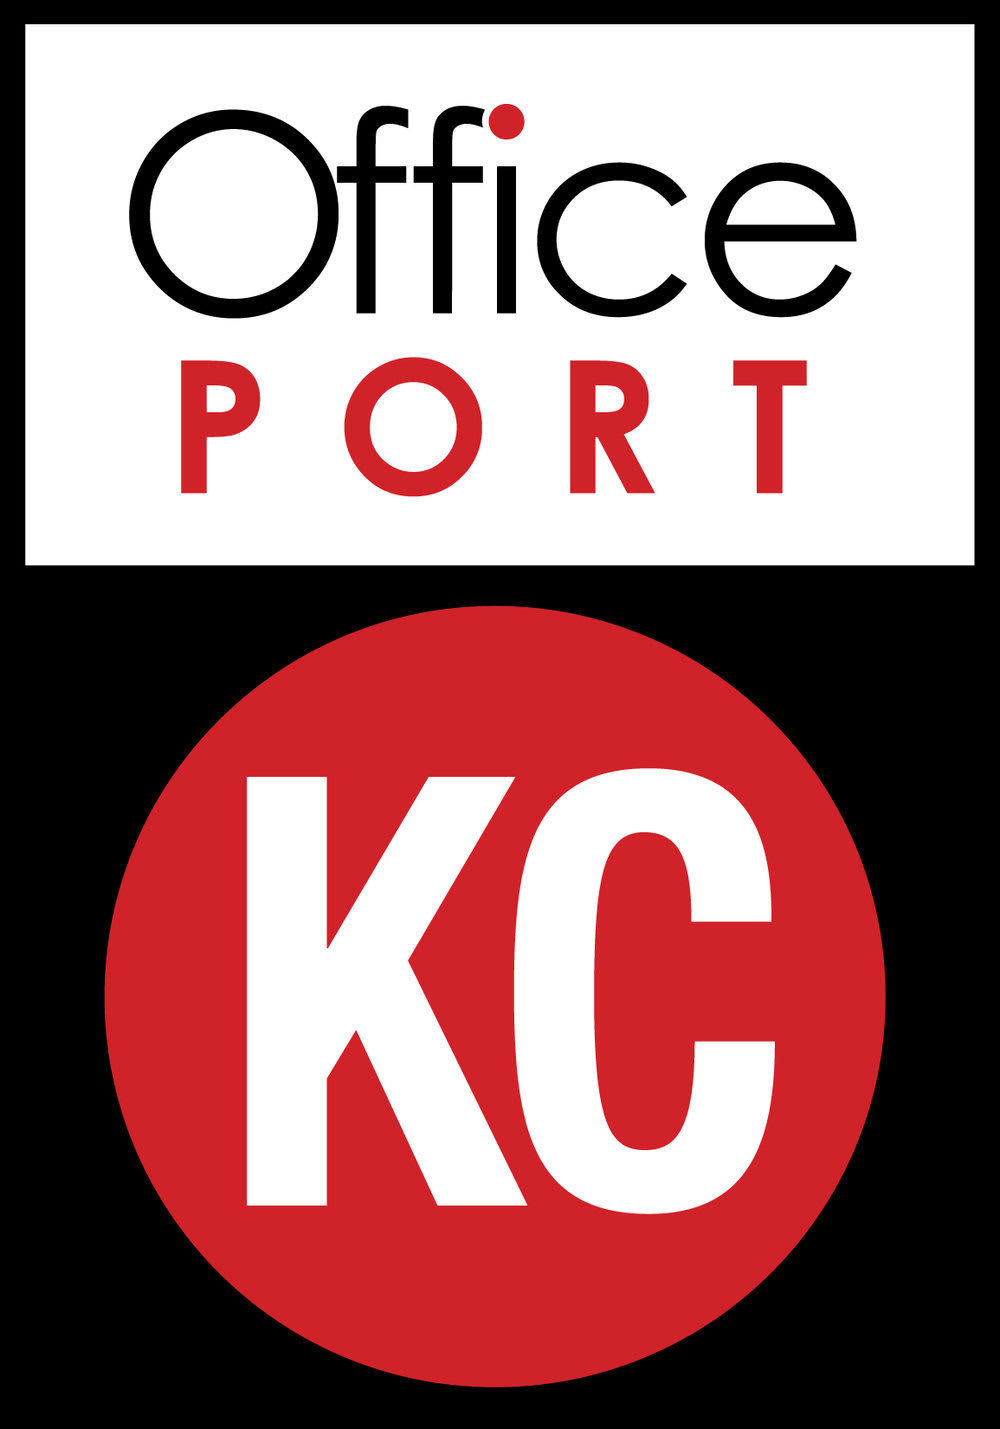 OfficePortLOGO.jpg